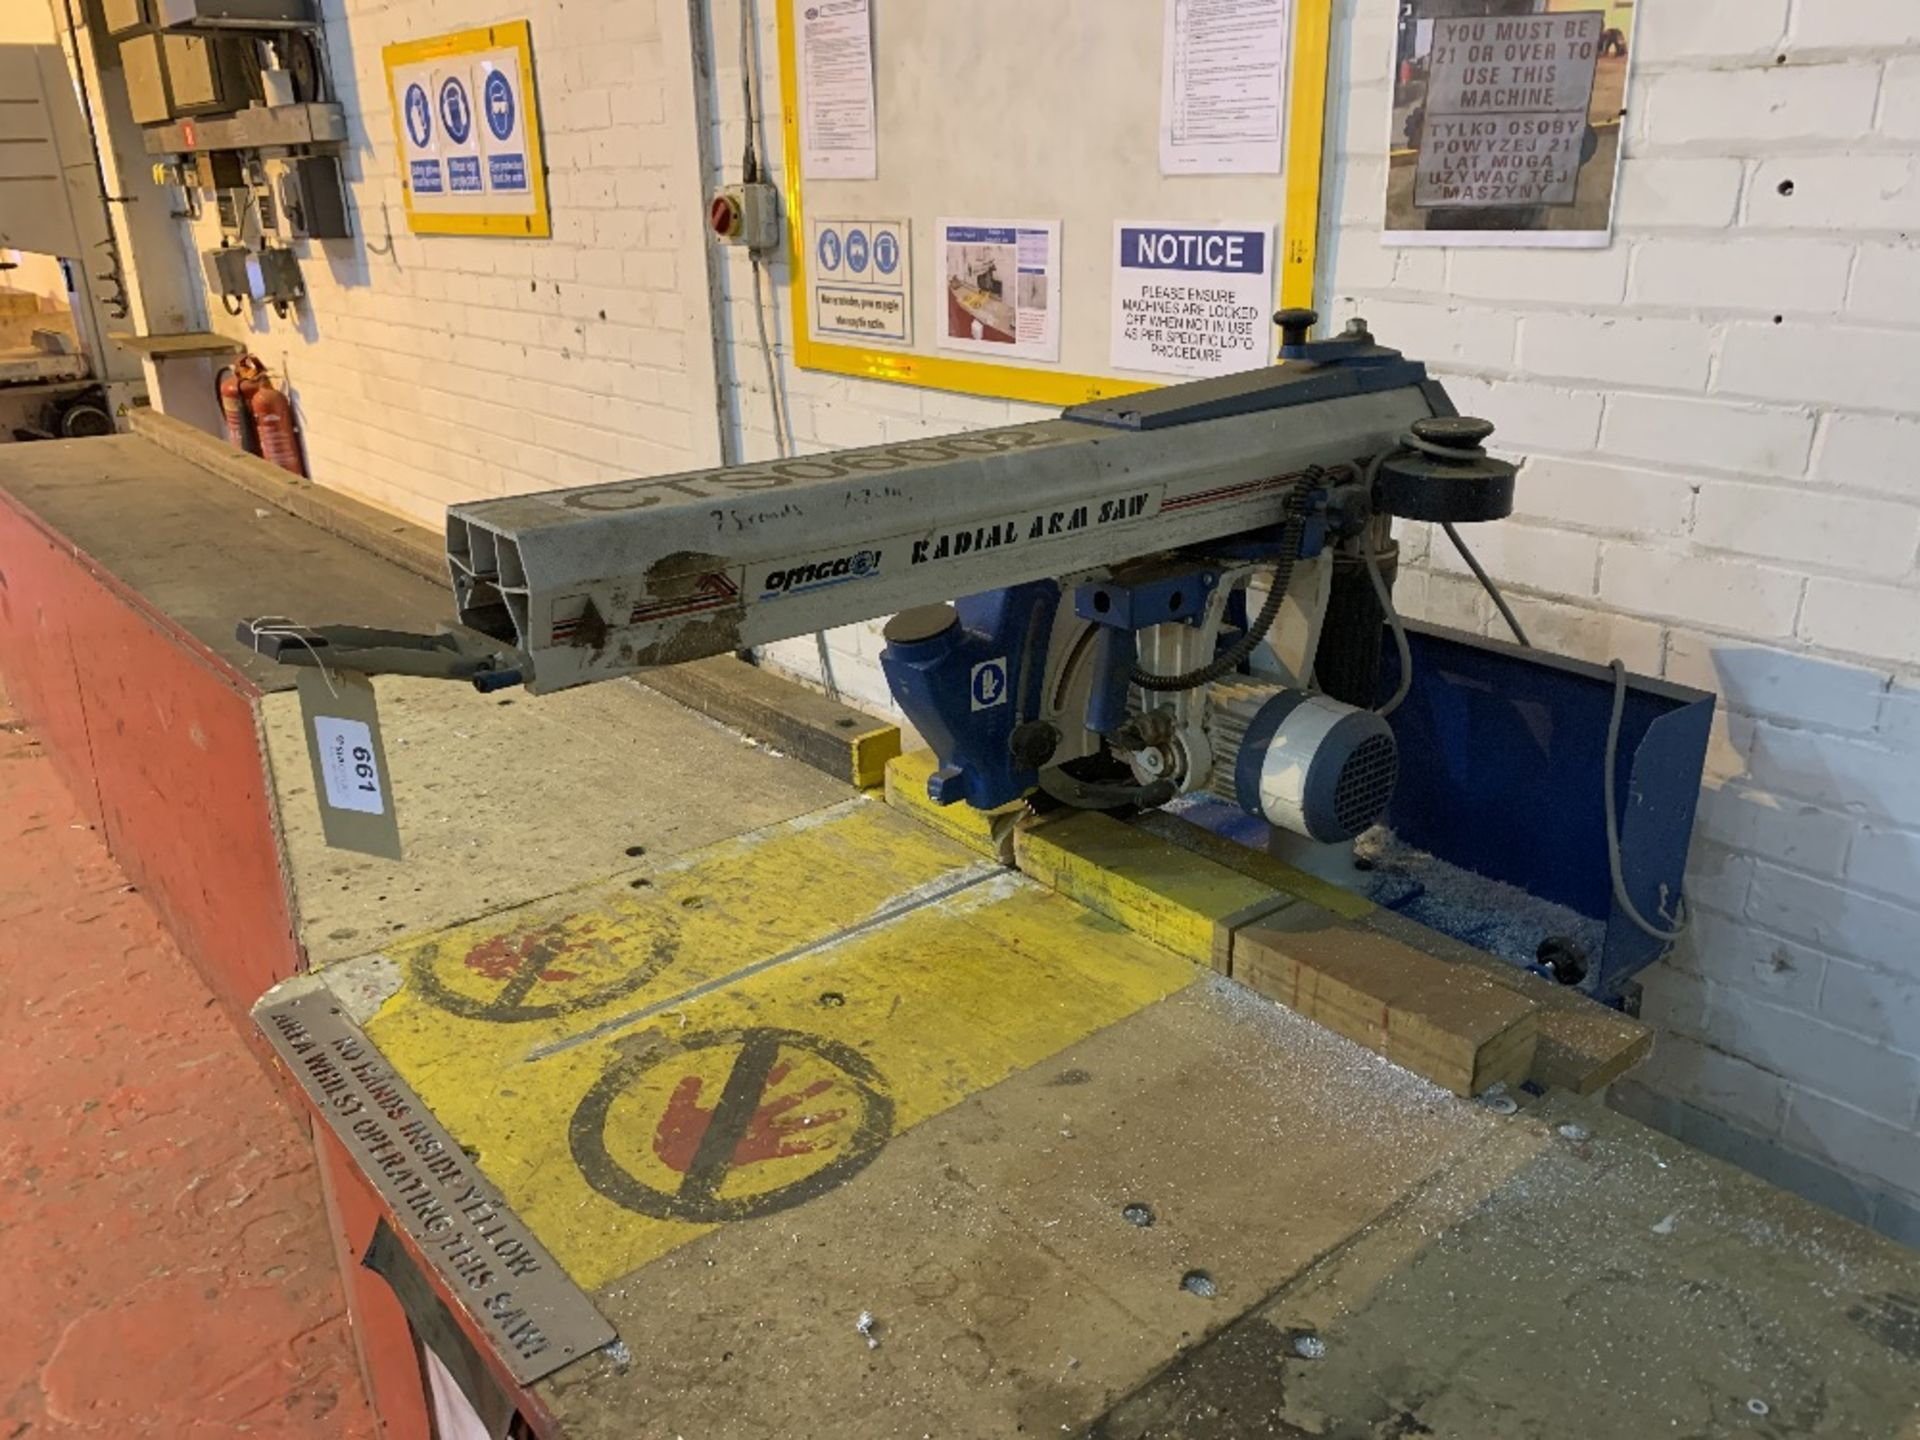 Omgear RN600 Vertical Radial Arm Saw - Image 3 of 4